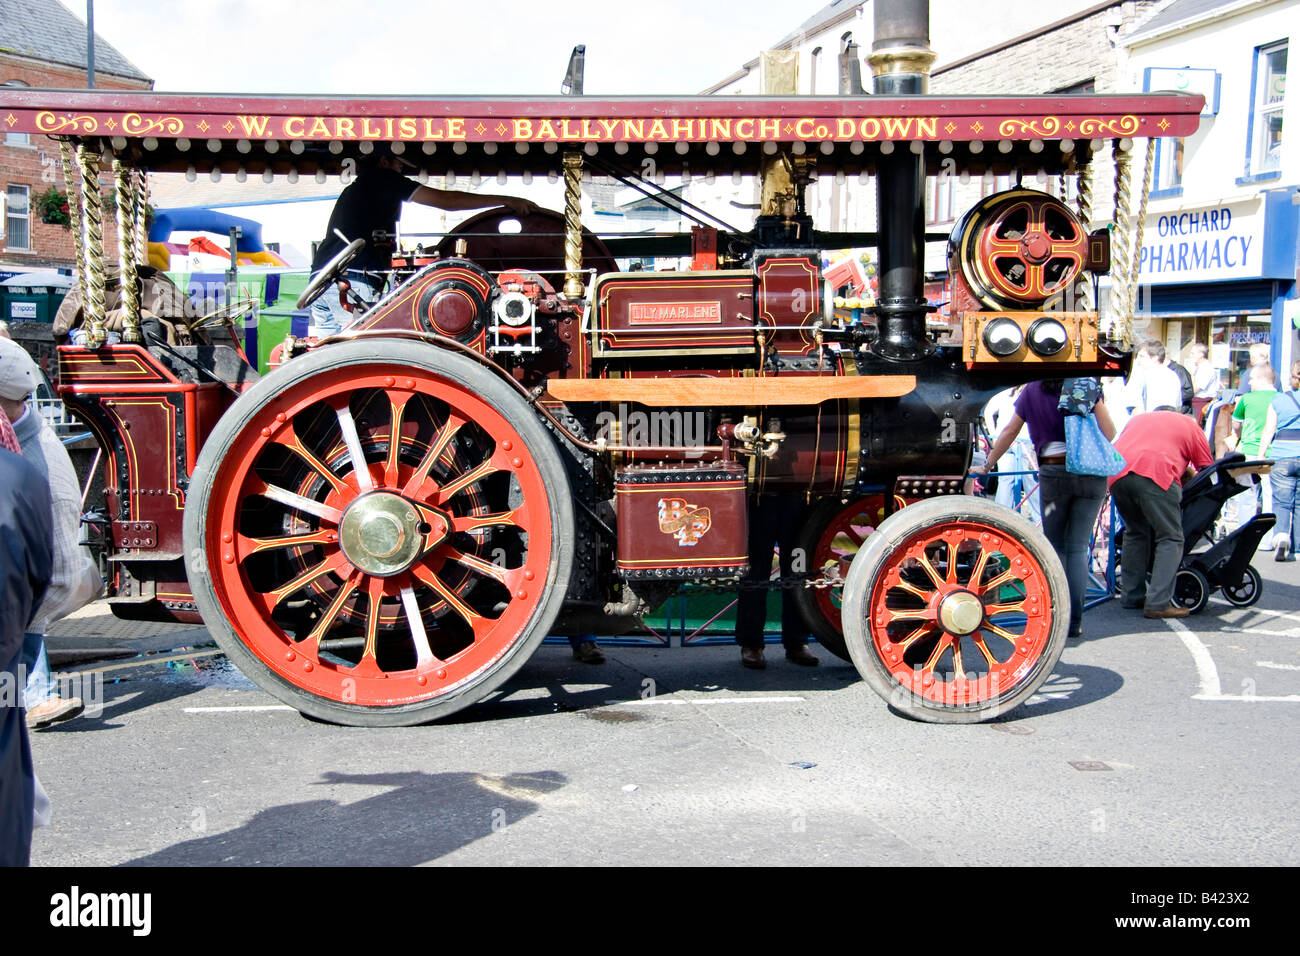 The 'Lily Marlene' showmans steam traction engine at a town fair - Stock Image